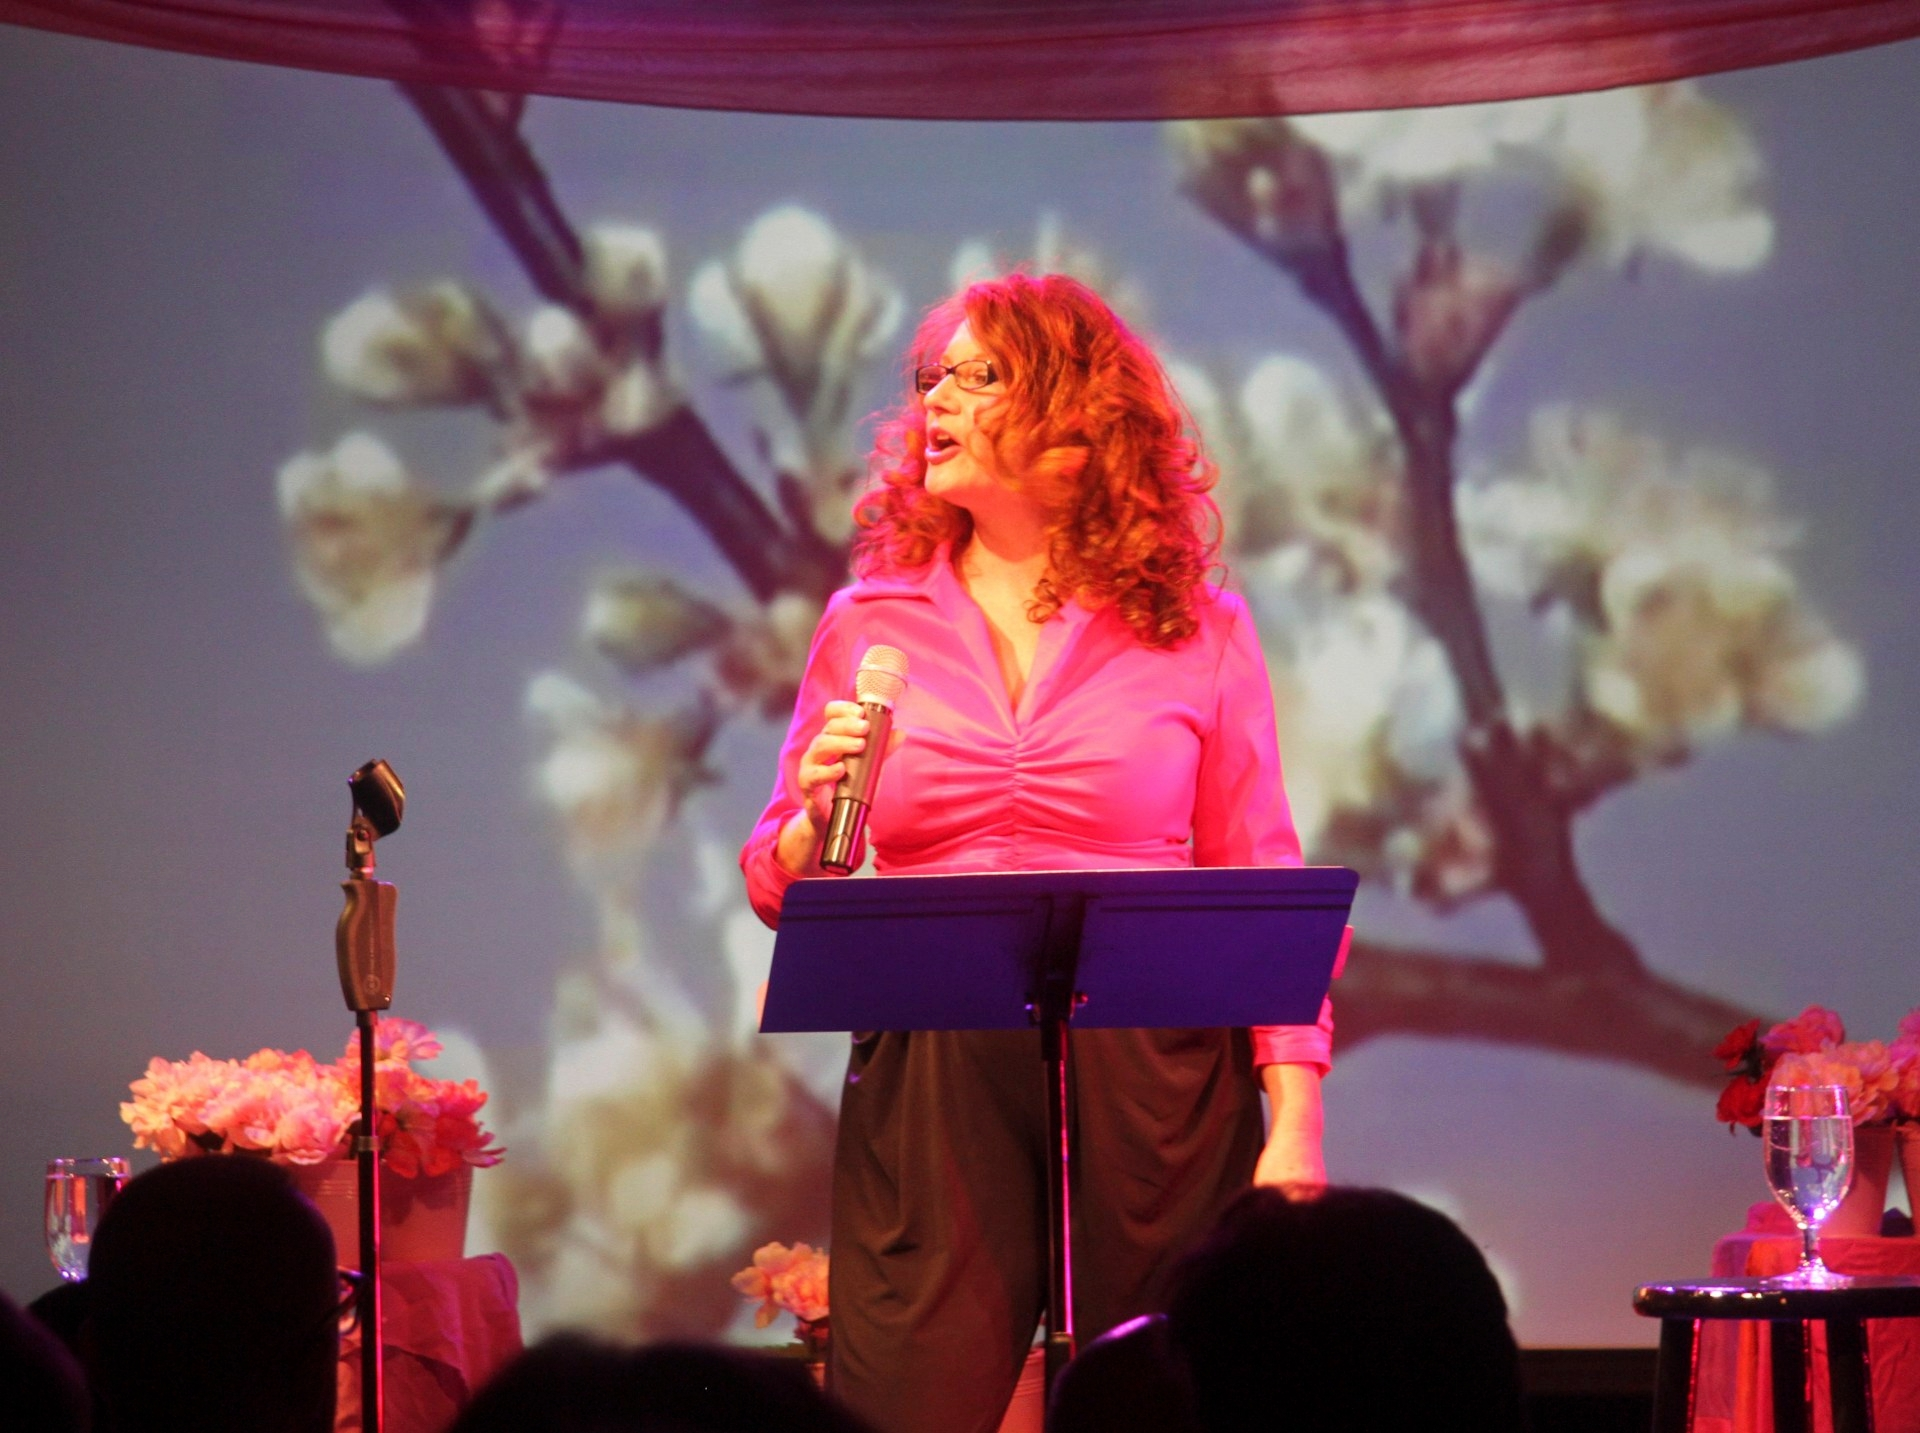 Karen Finley behind a lecturn performing in pink top in front of projection of flowers